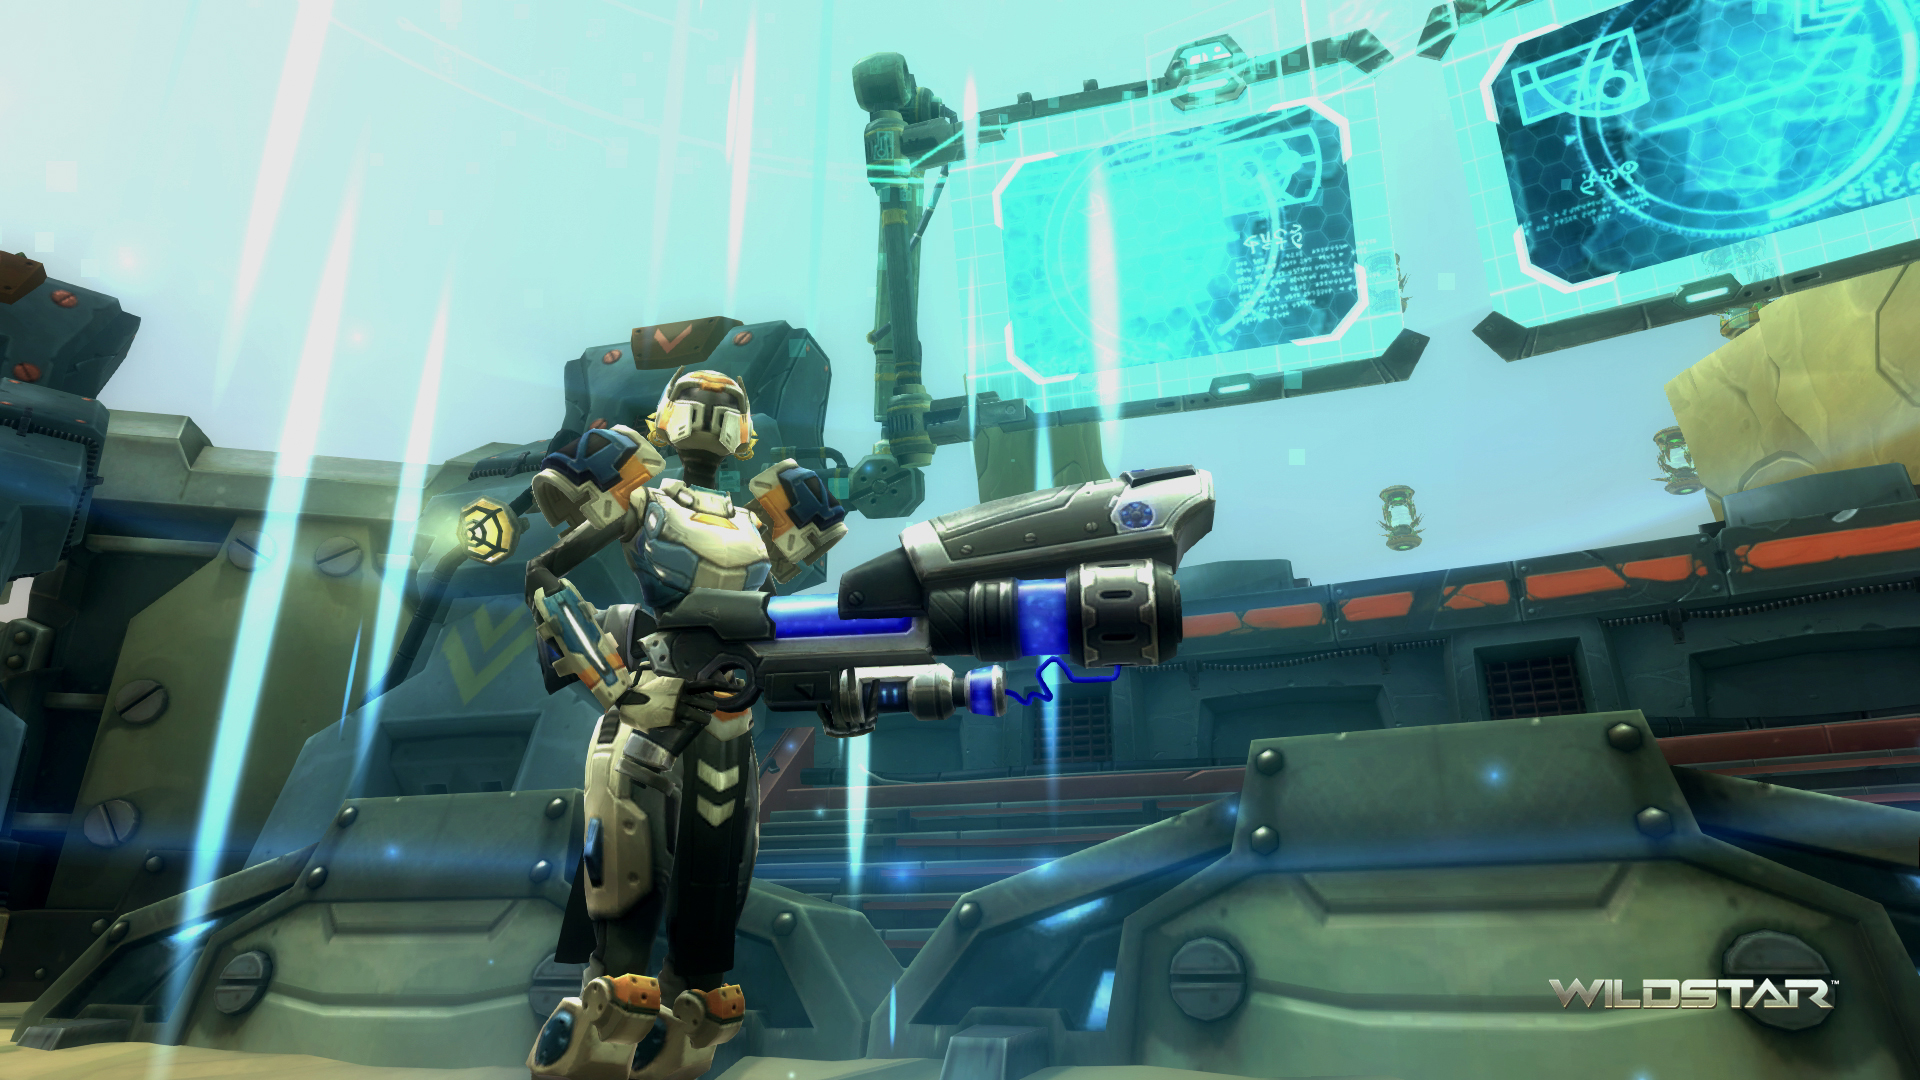 Is Wildstar going free-to-play on Steam?